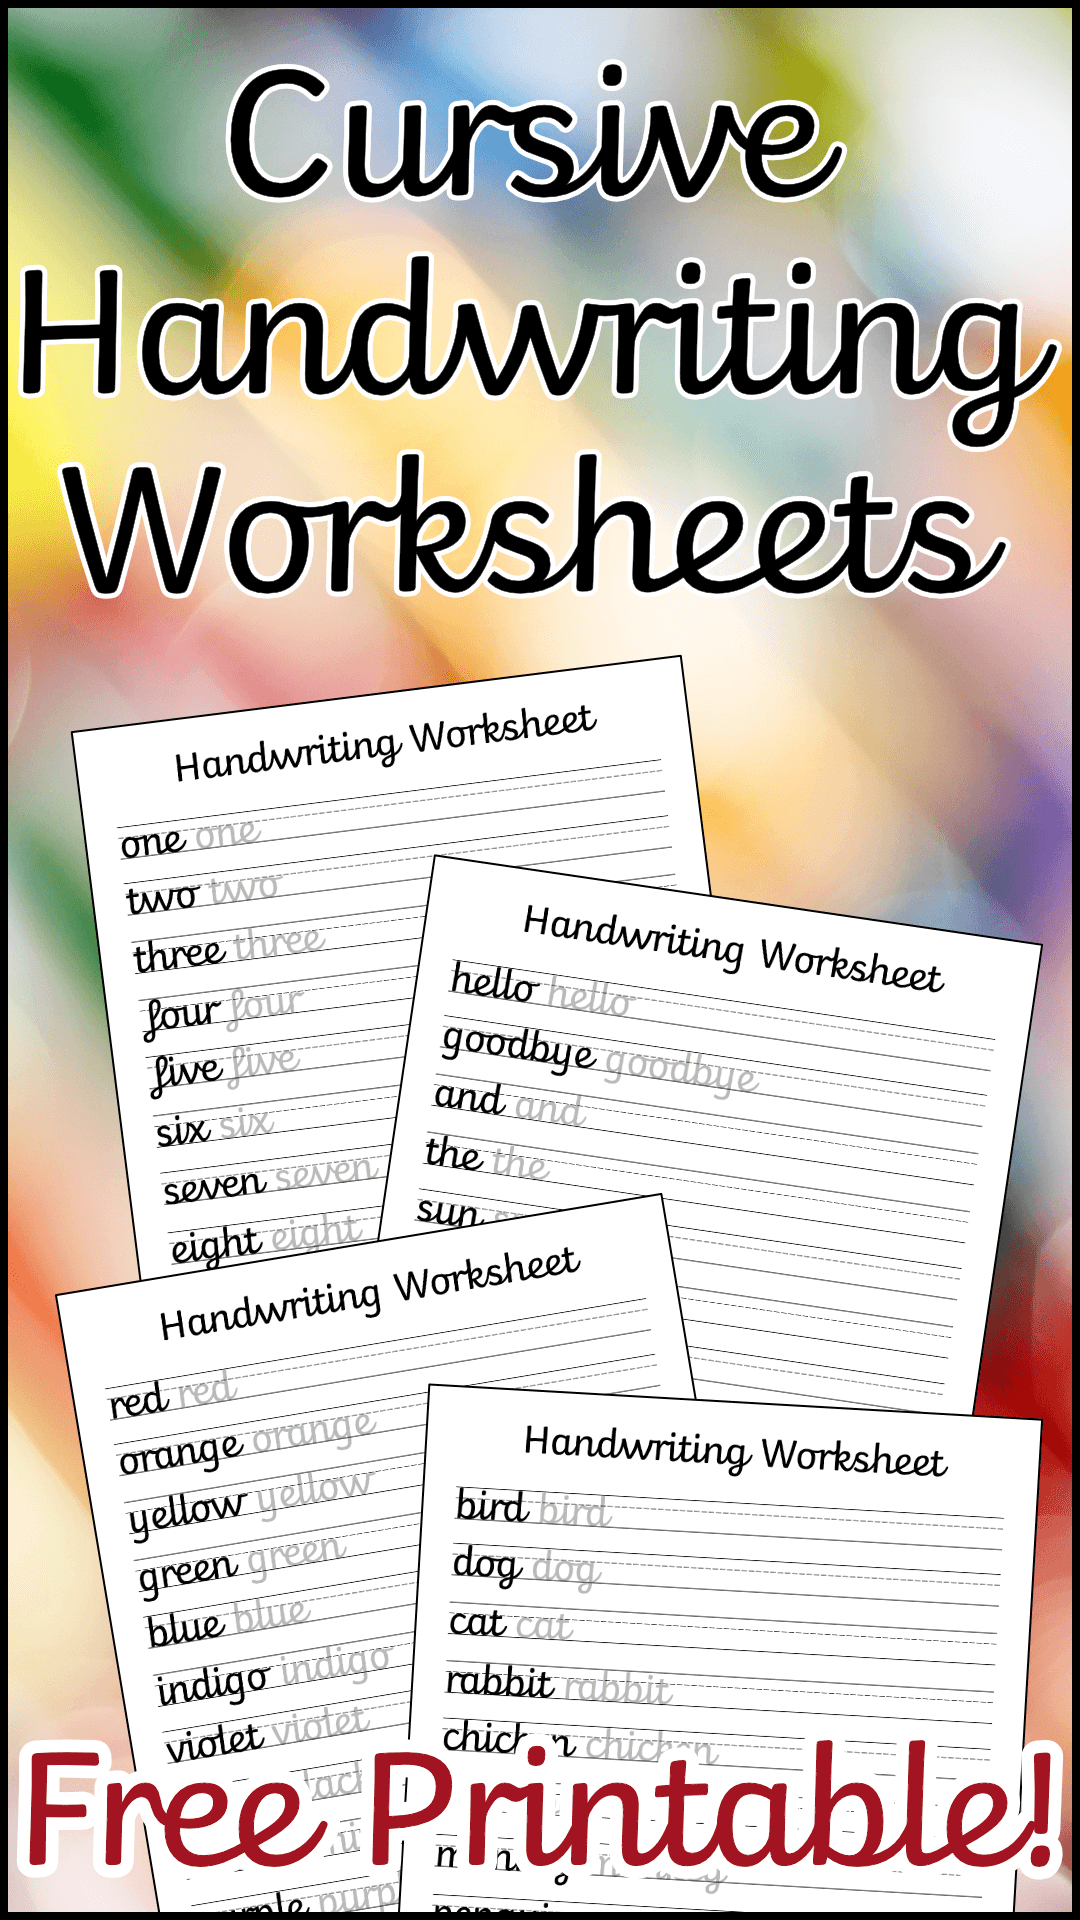 Cursive Handwriting Worksheets – Free Printable